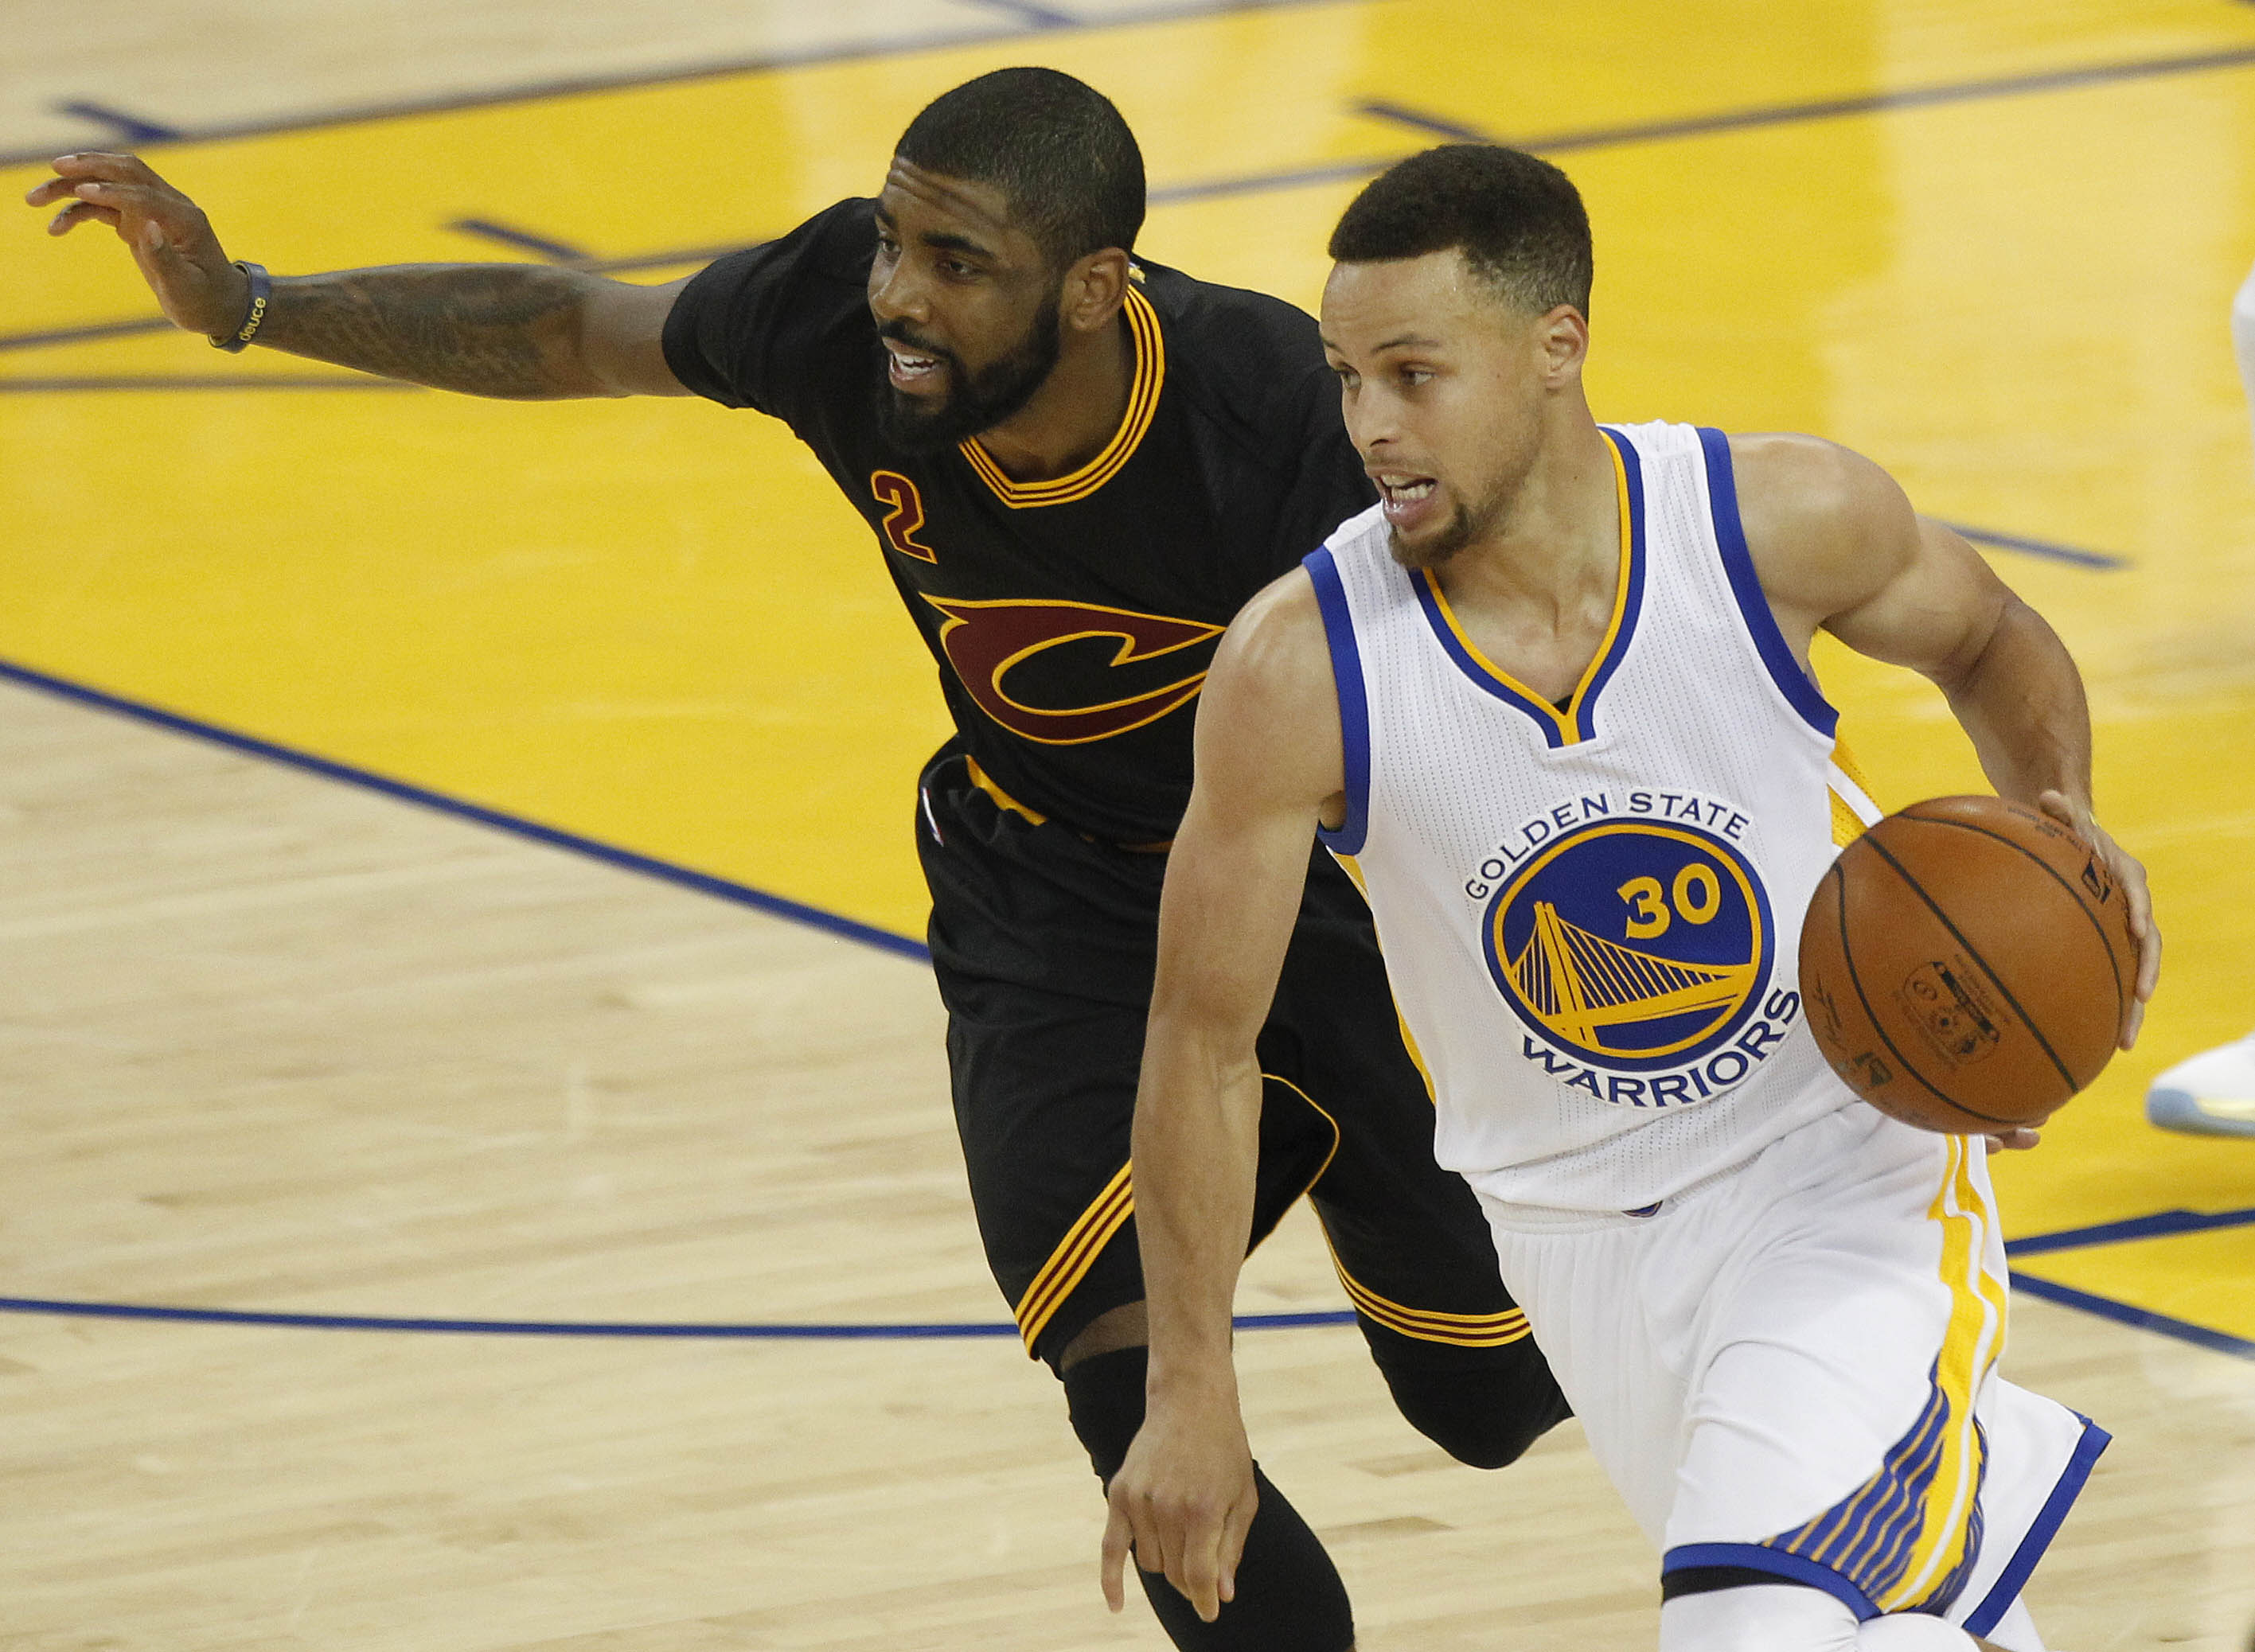 9349306-nba-finals-cleveland-cavaliers-at-golden-state-warriors